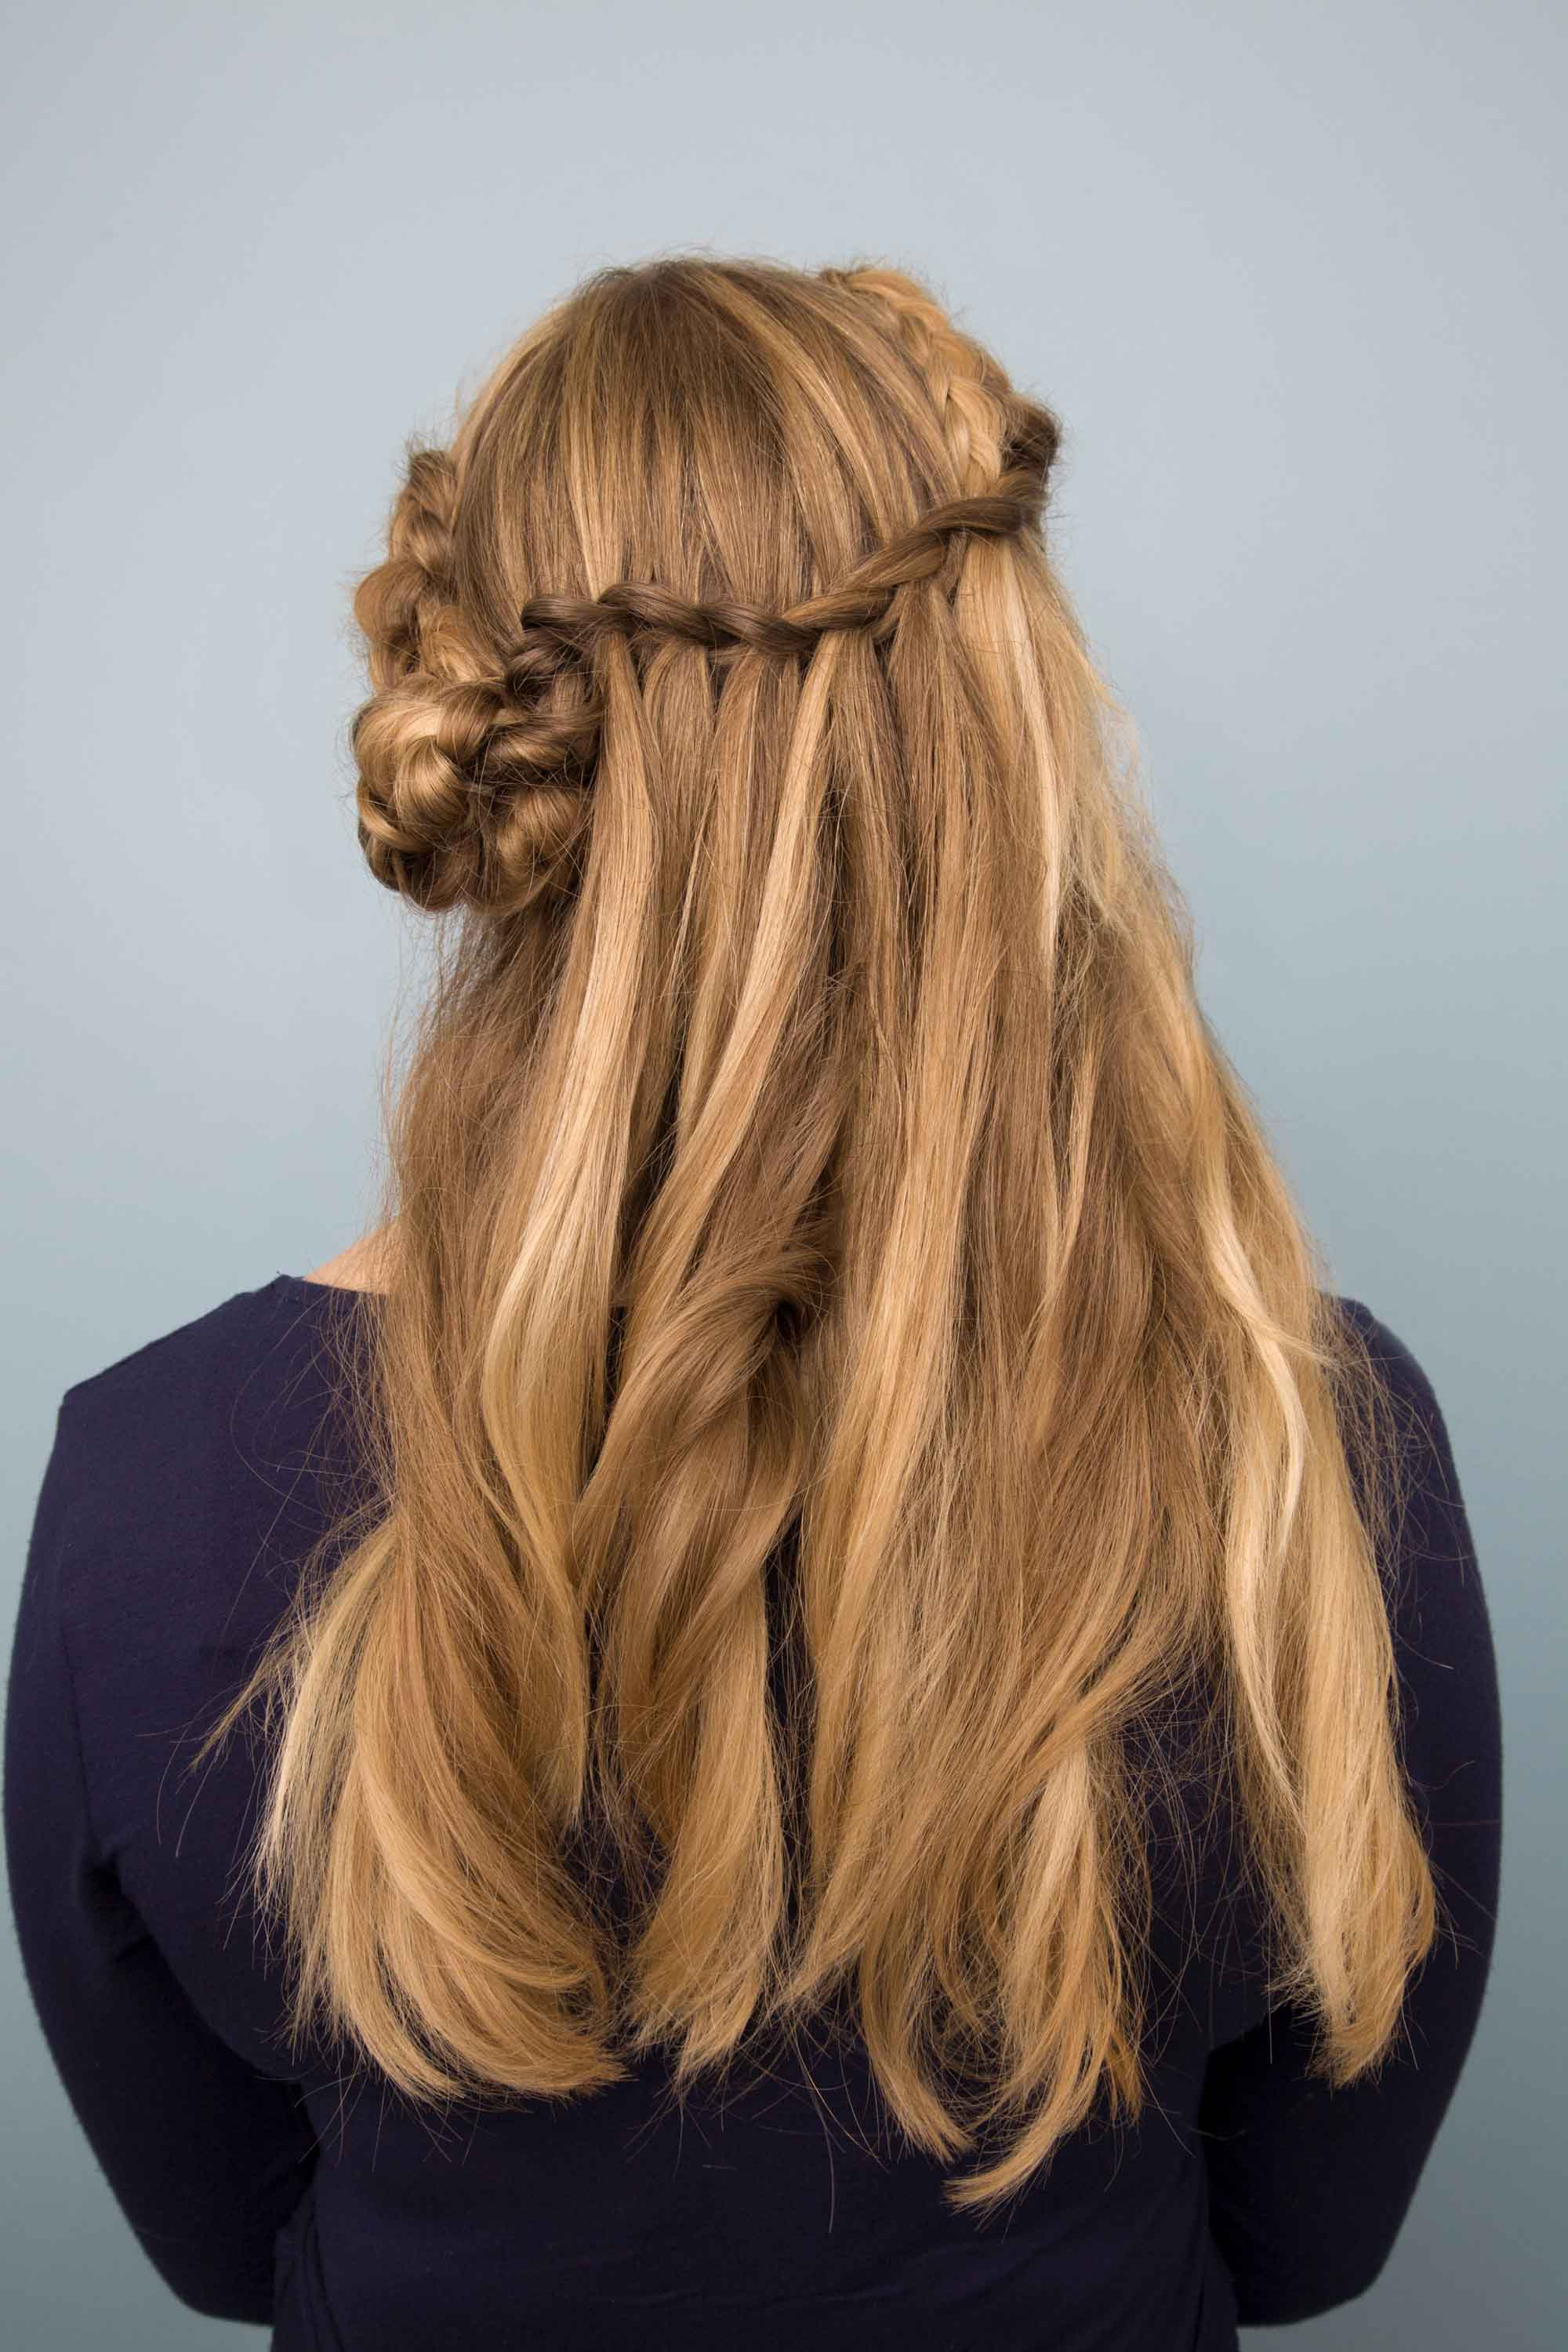 One Look To Rule Em All 24 Renaissance Hairstyles That We Re Still